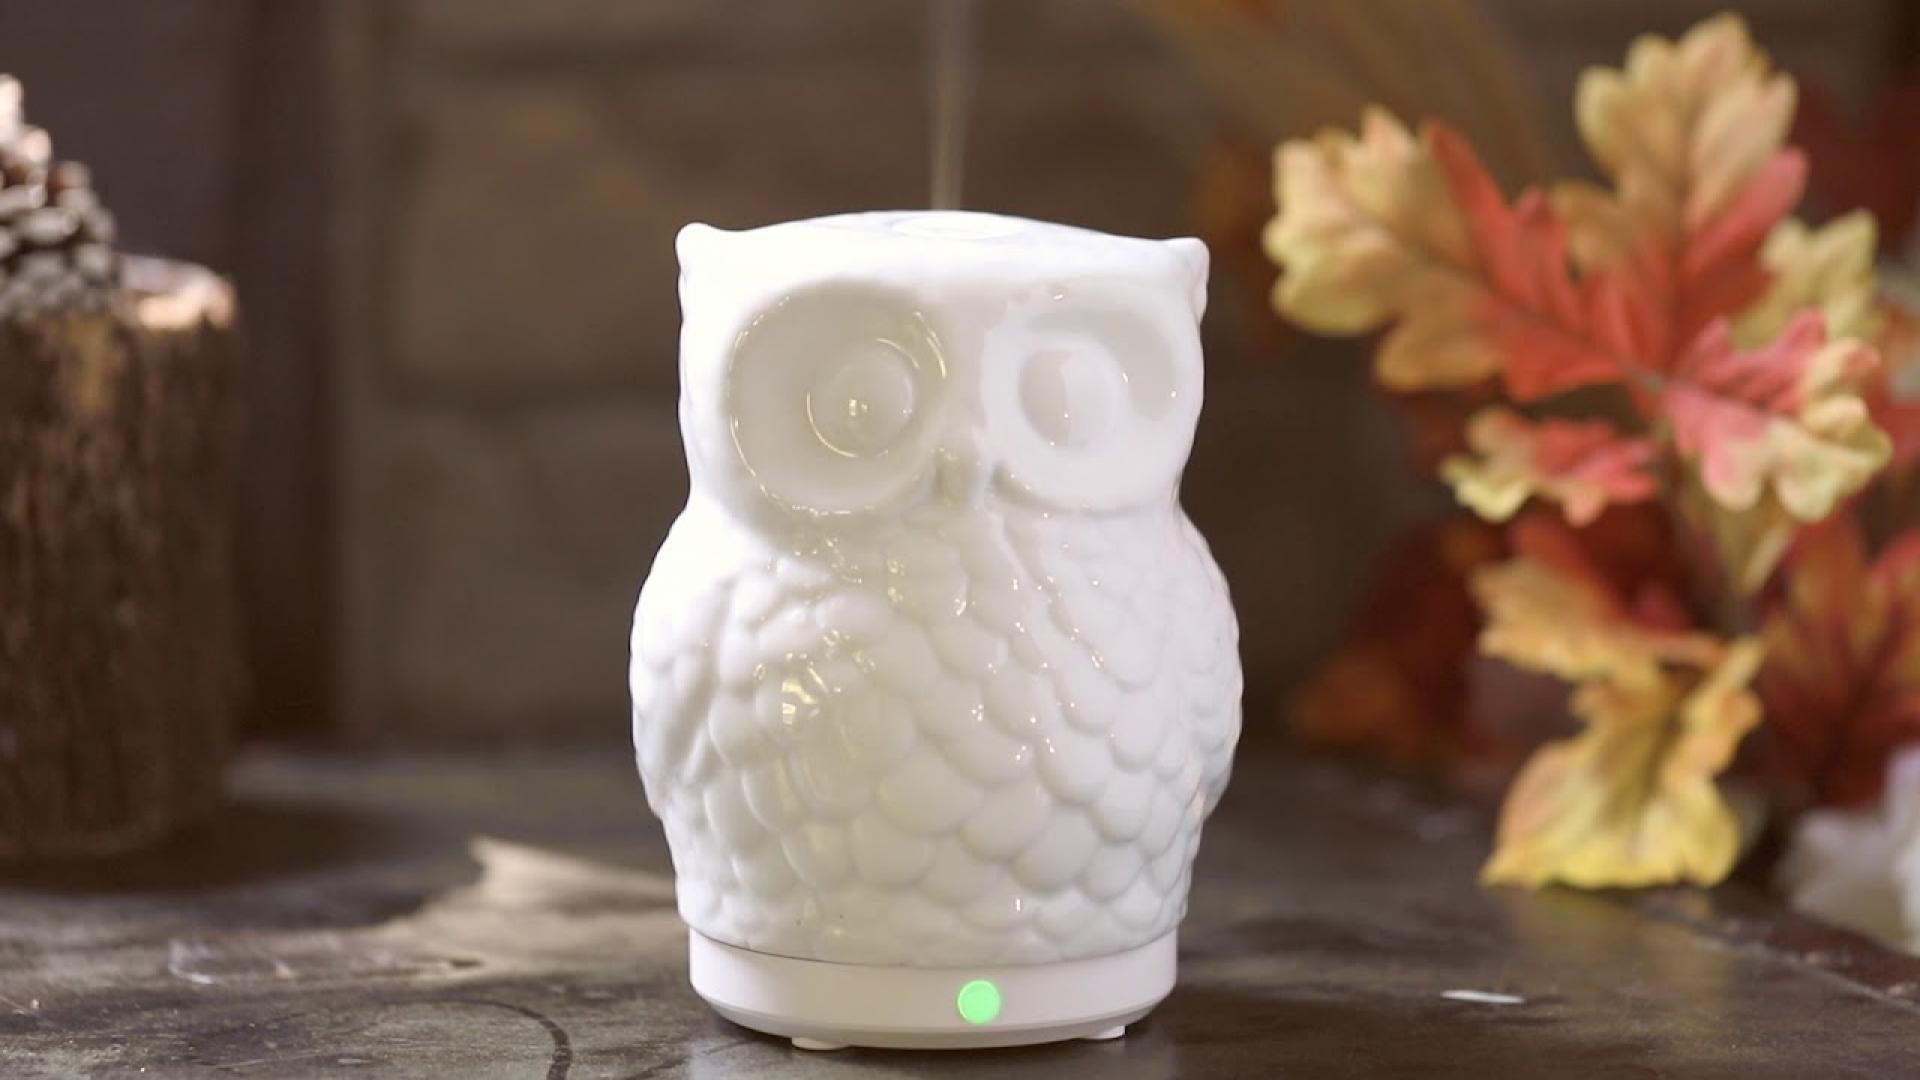 SpaRoom Owl Ceramic Ultrasonic Essential Oil Diffuser